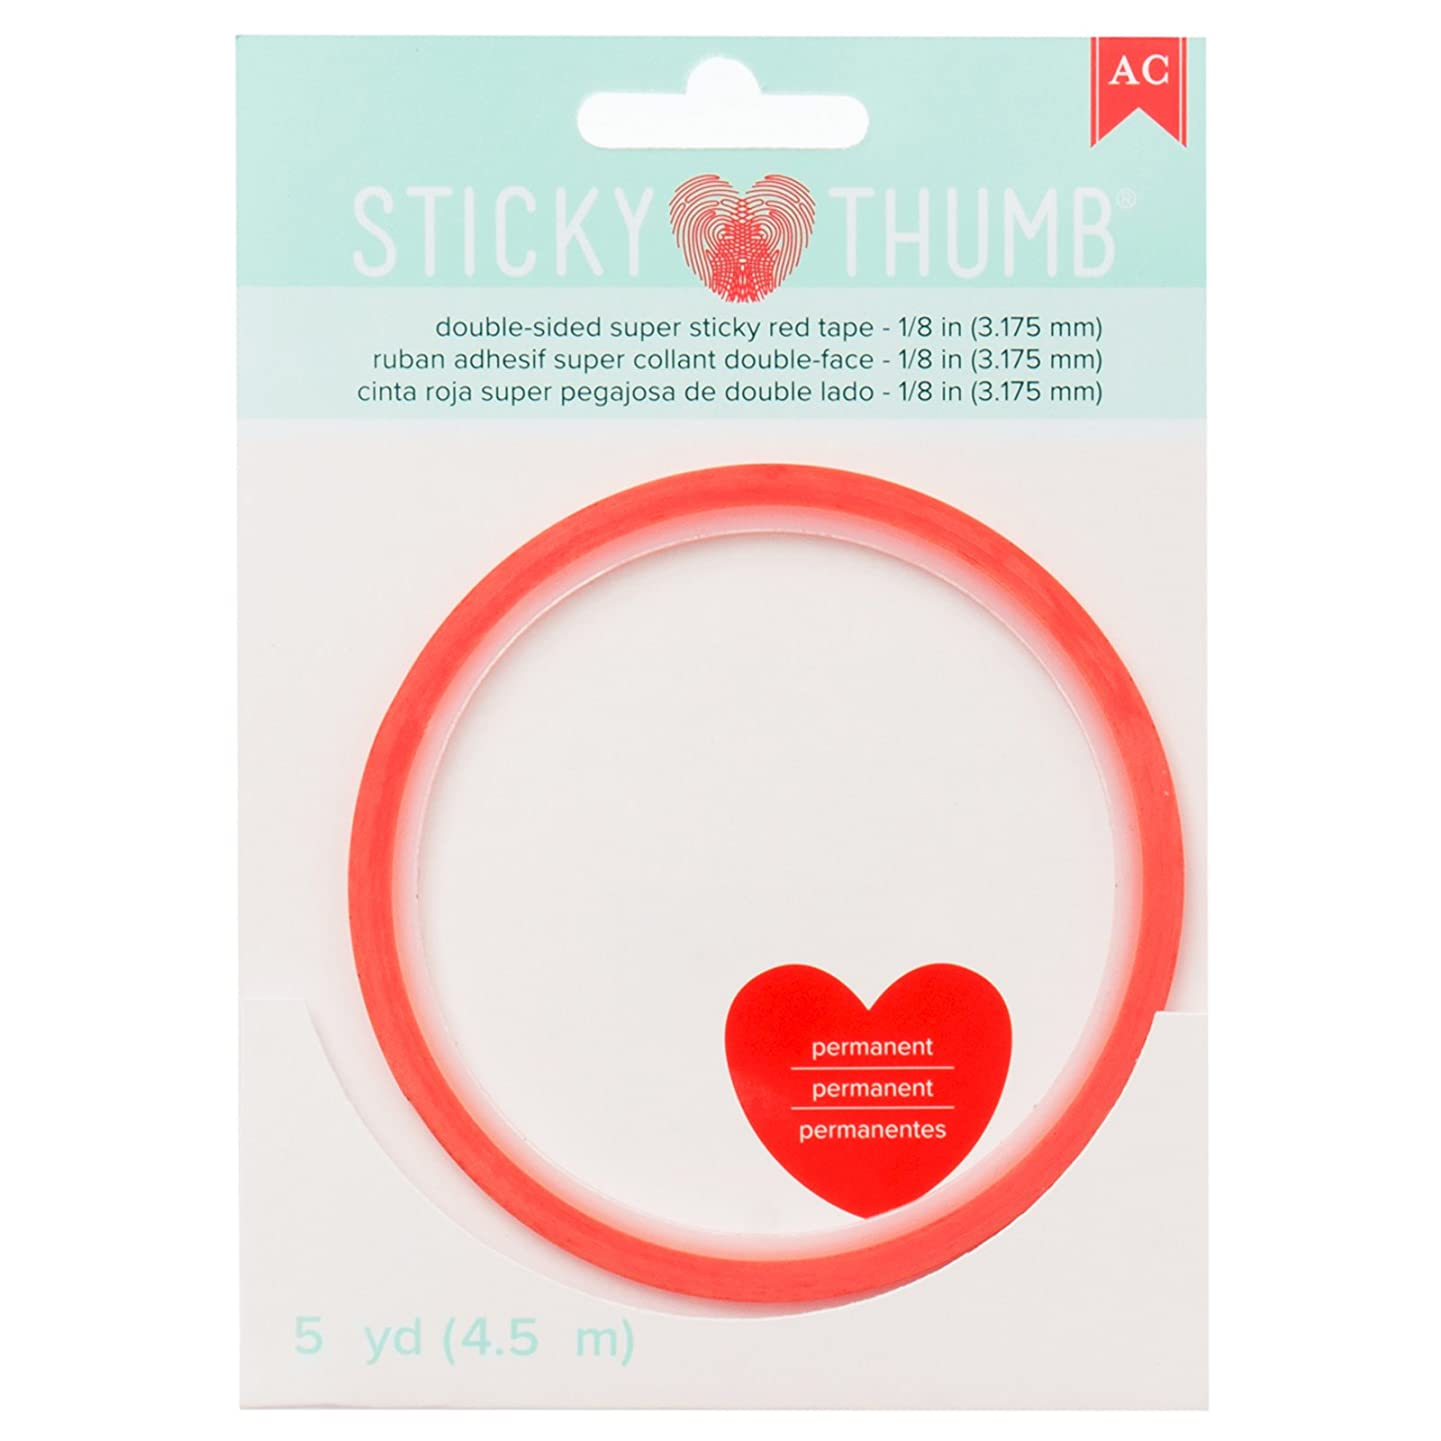 American Crafts Super Red Tape 1/8 Inch Wide 5 Yards Sticky Thumb ruymifdslibf